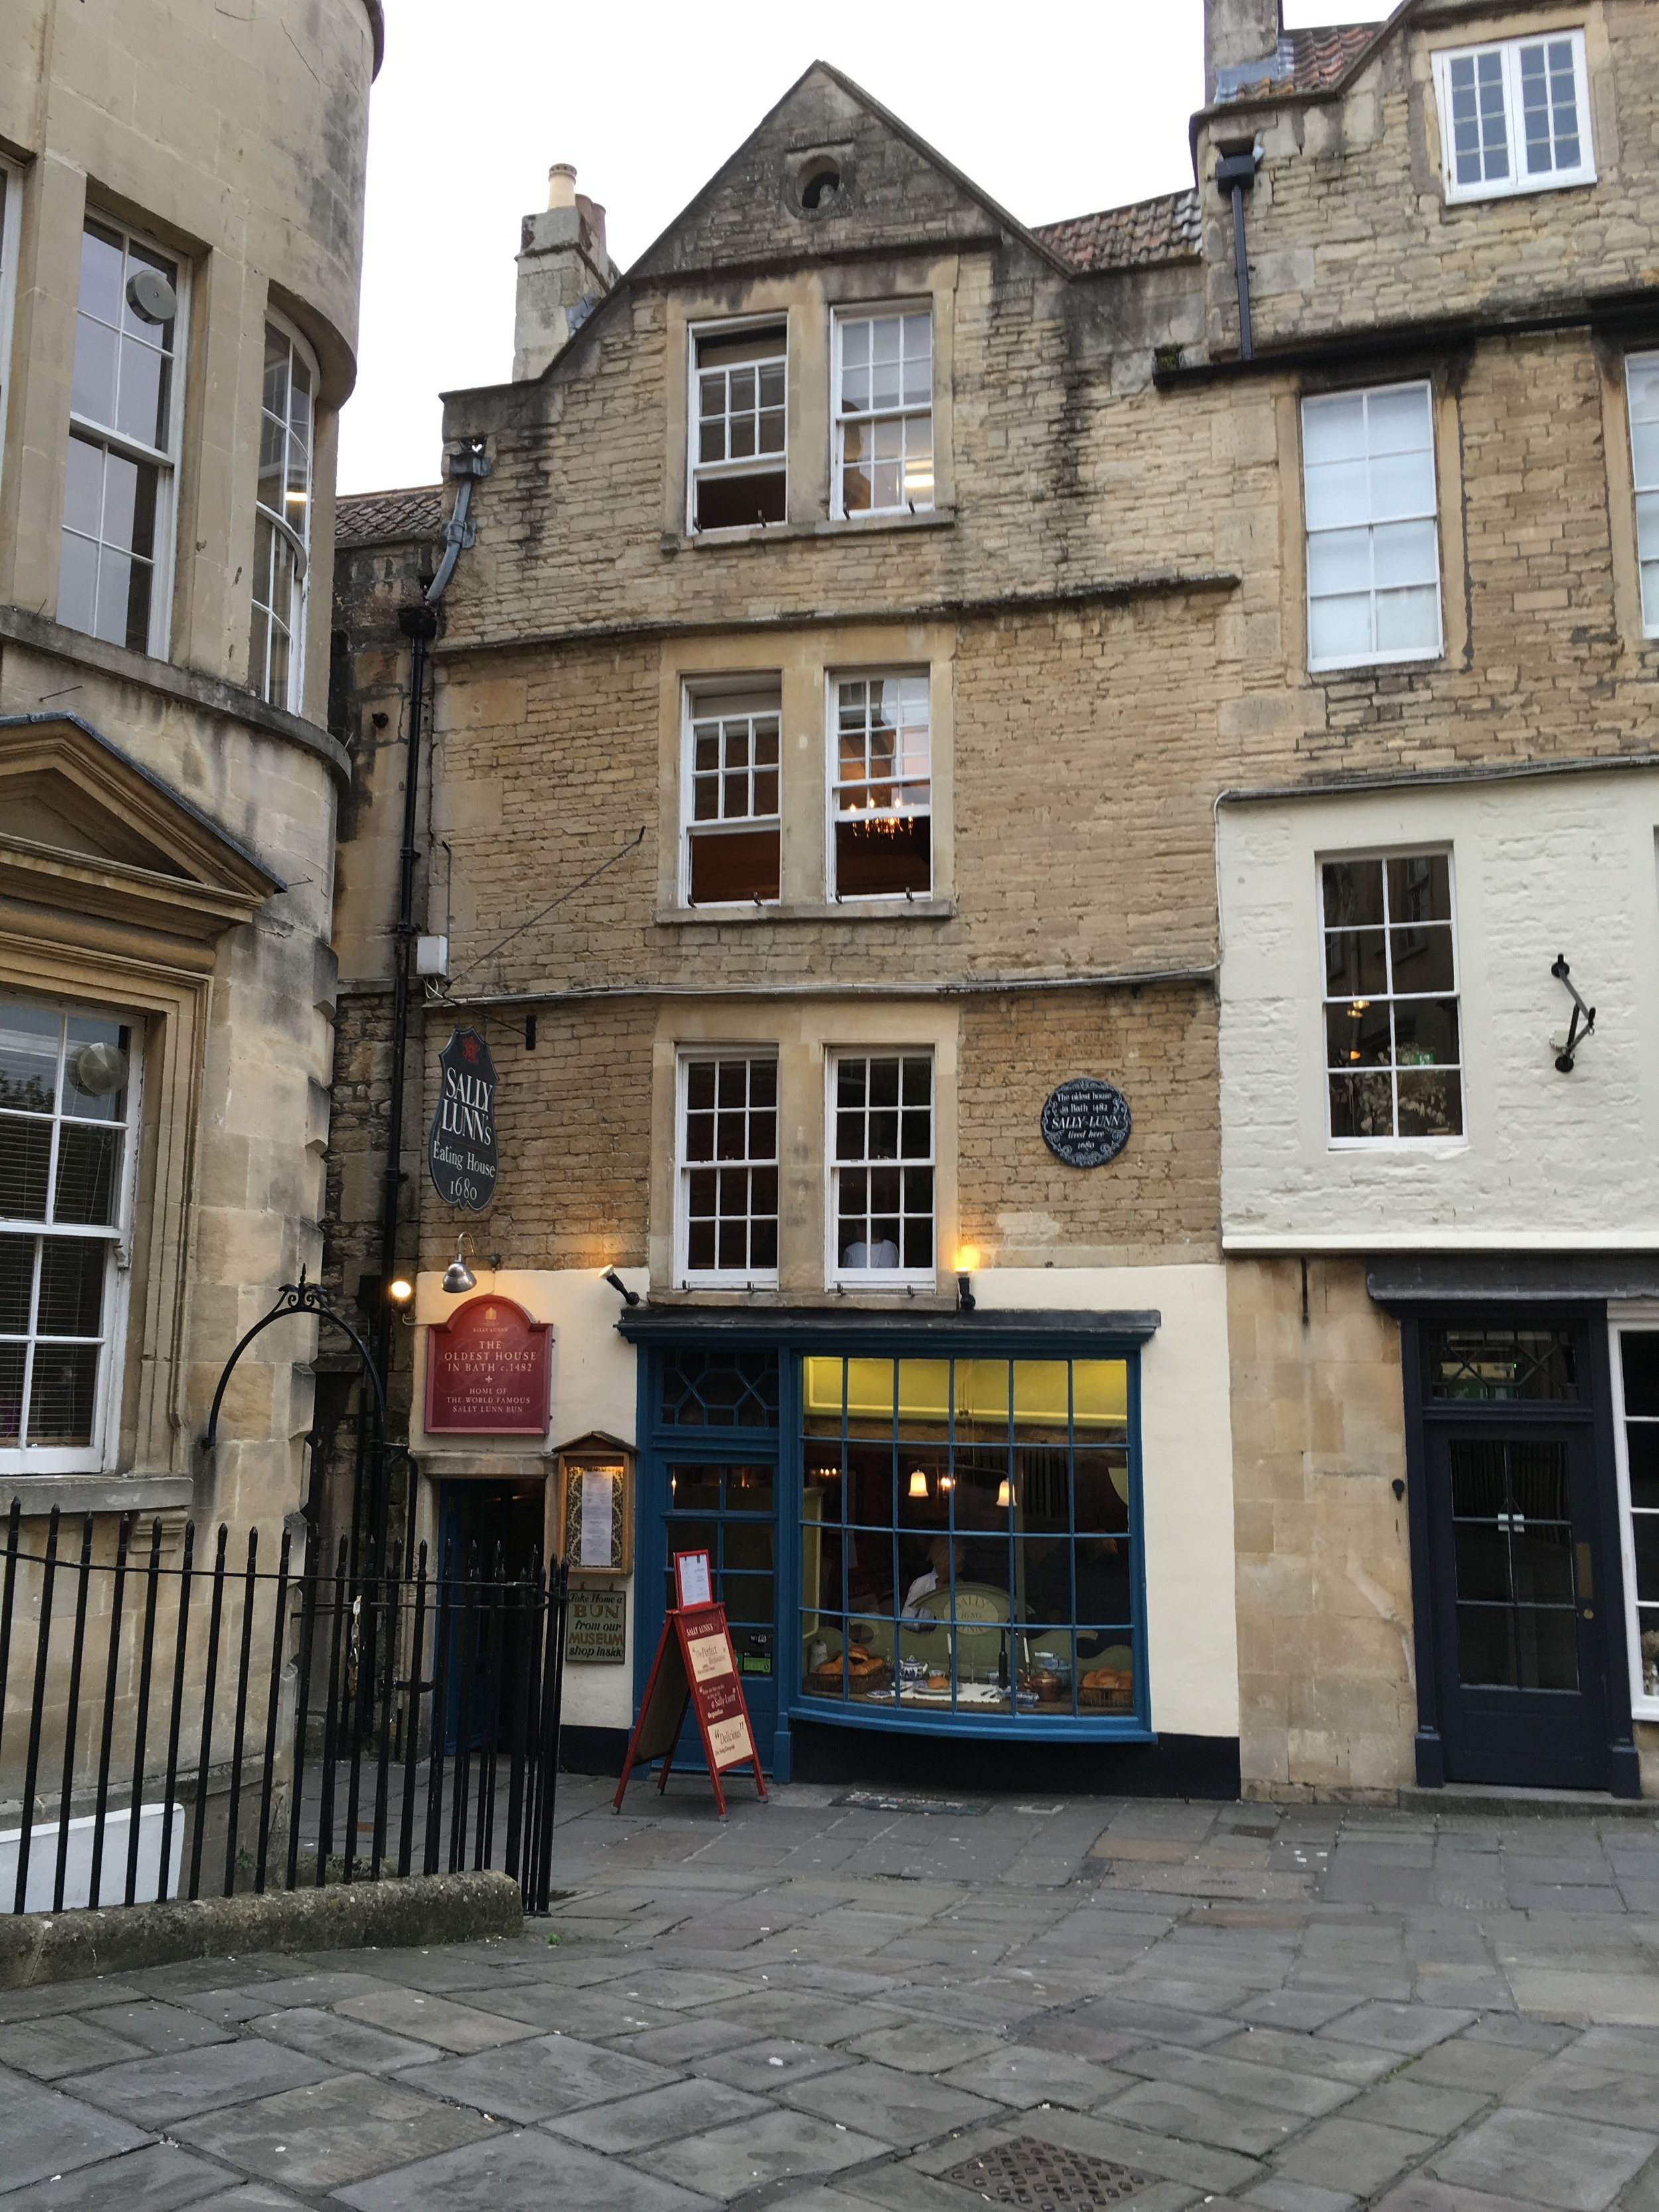 The Sally Lunn Bun restaurant - the same building Sally Lunn lived in and operated her restaurant out of.